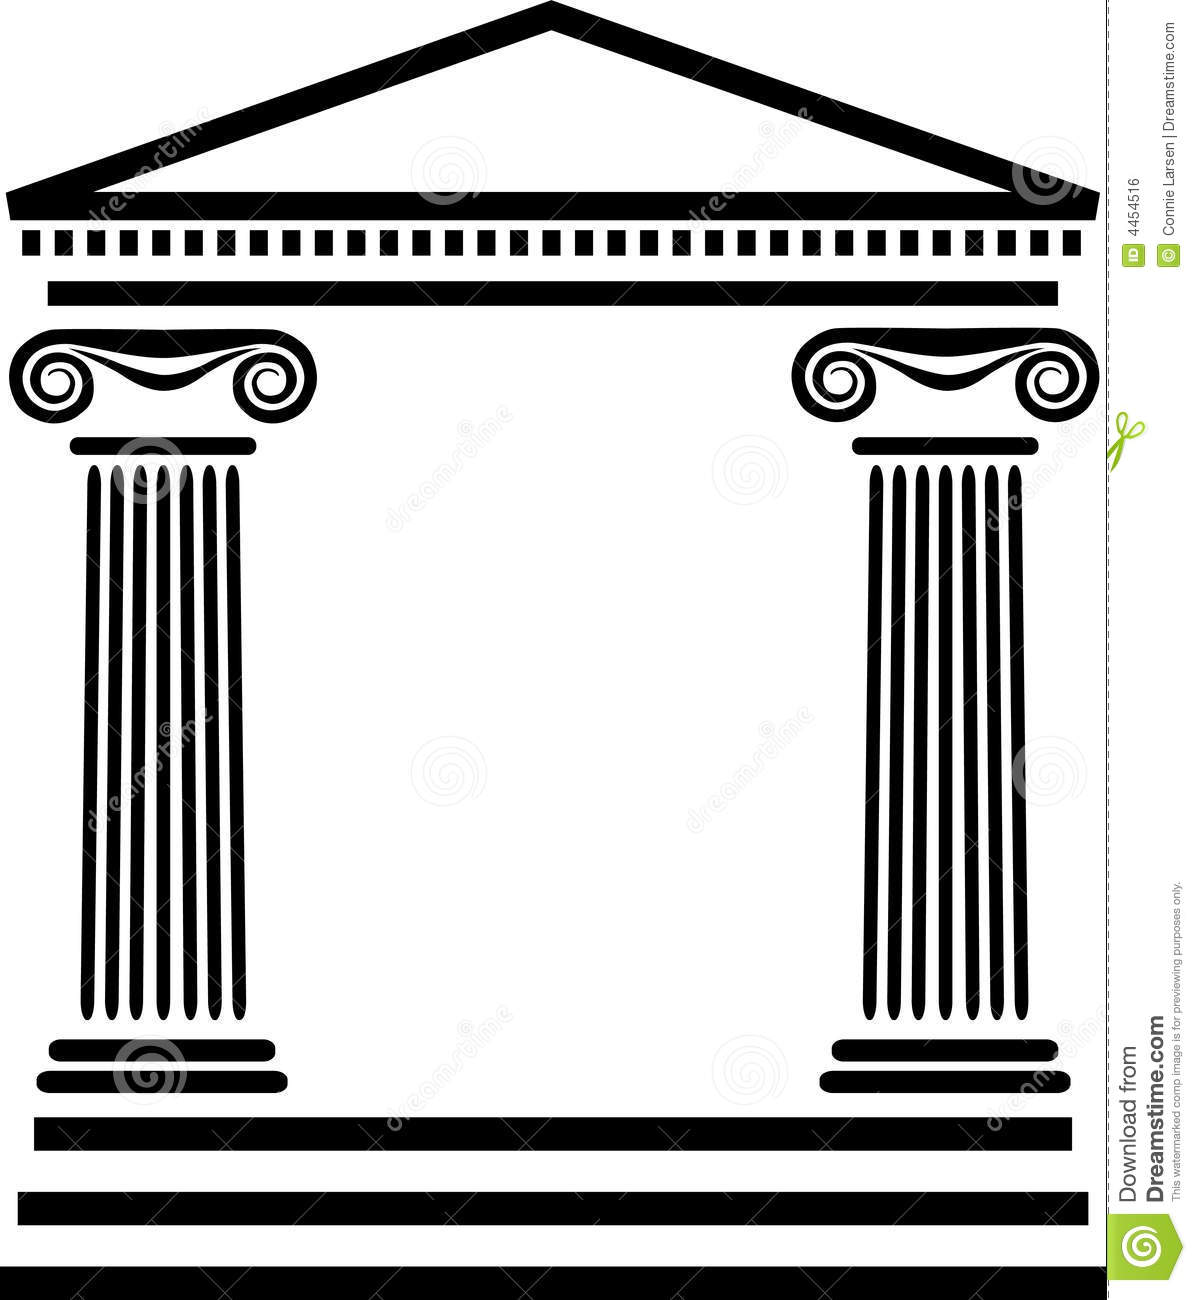 Greek Columns Architectureeps Royalty Free Stock Image Image